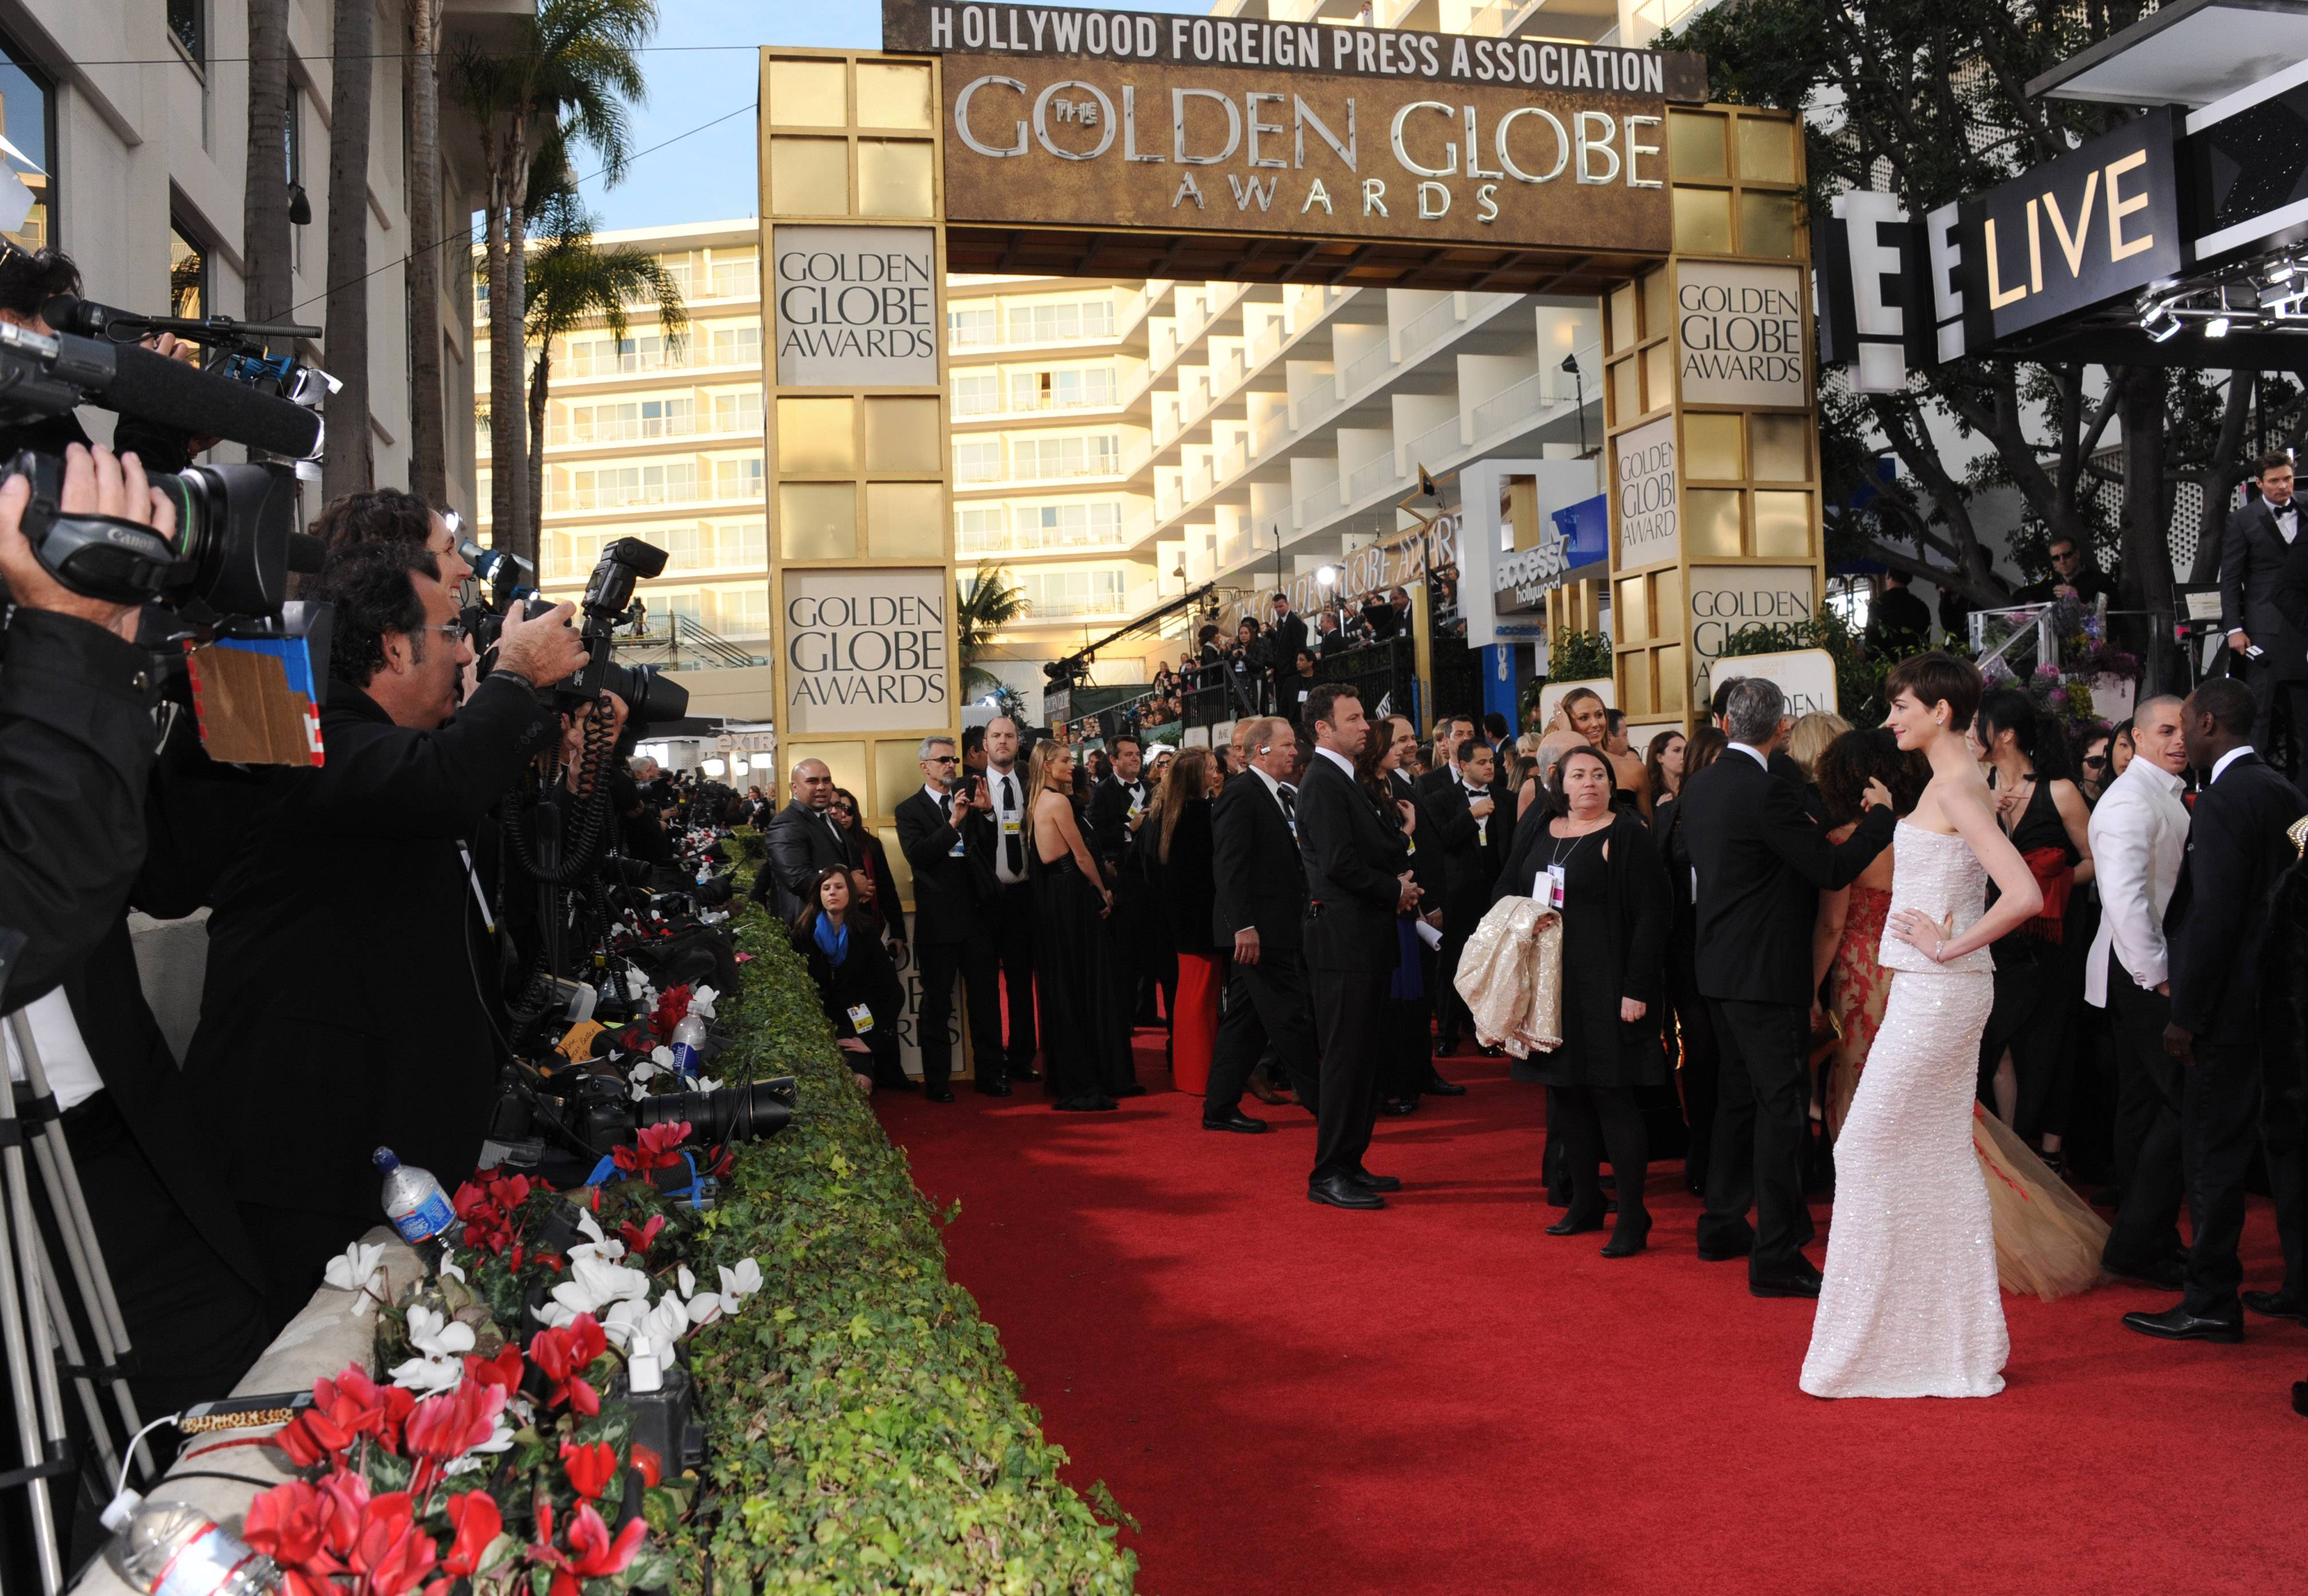 The organization that puts on the Golden Globe Awards and the company that produces the telecast have resolved their long-standing court battle over rights to the show.